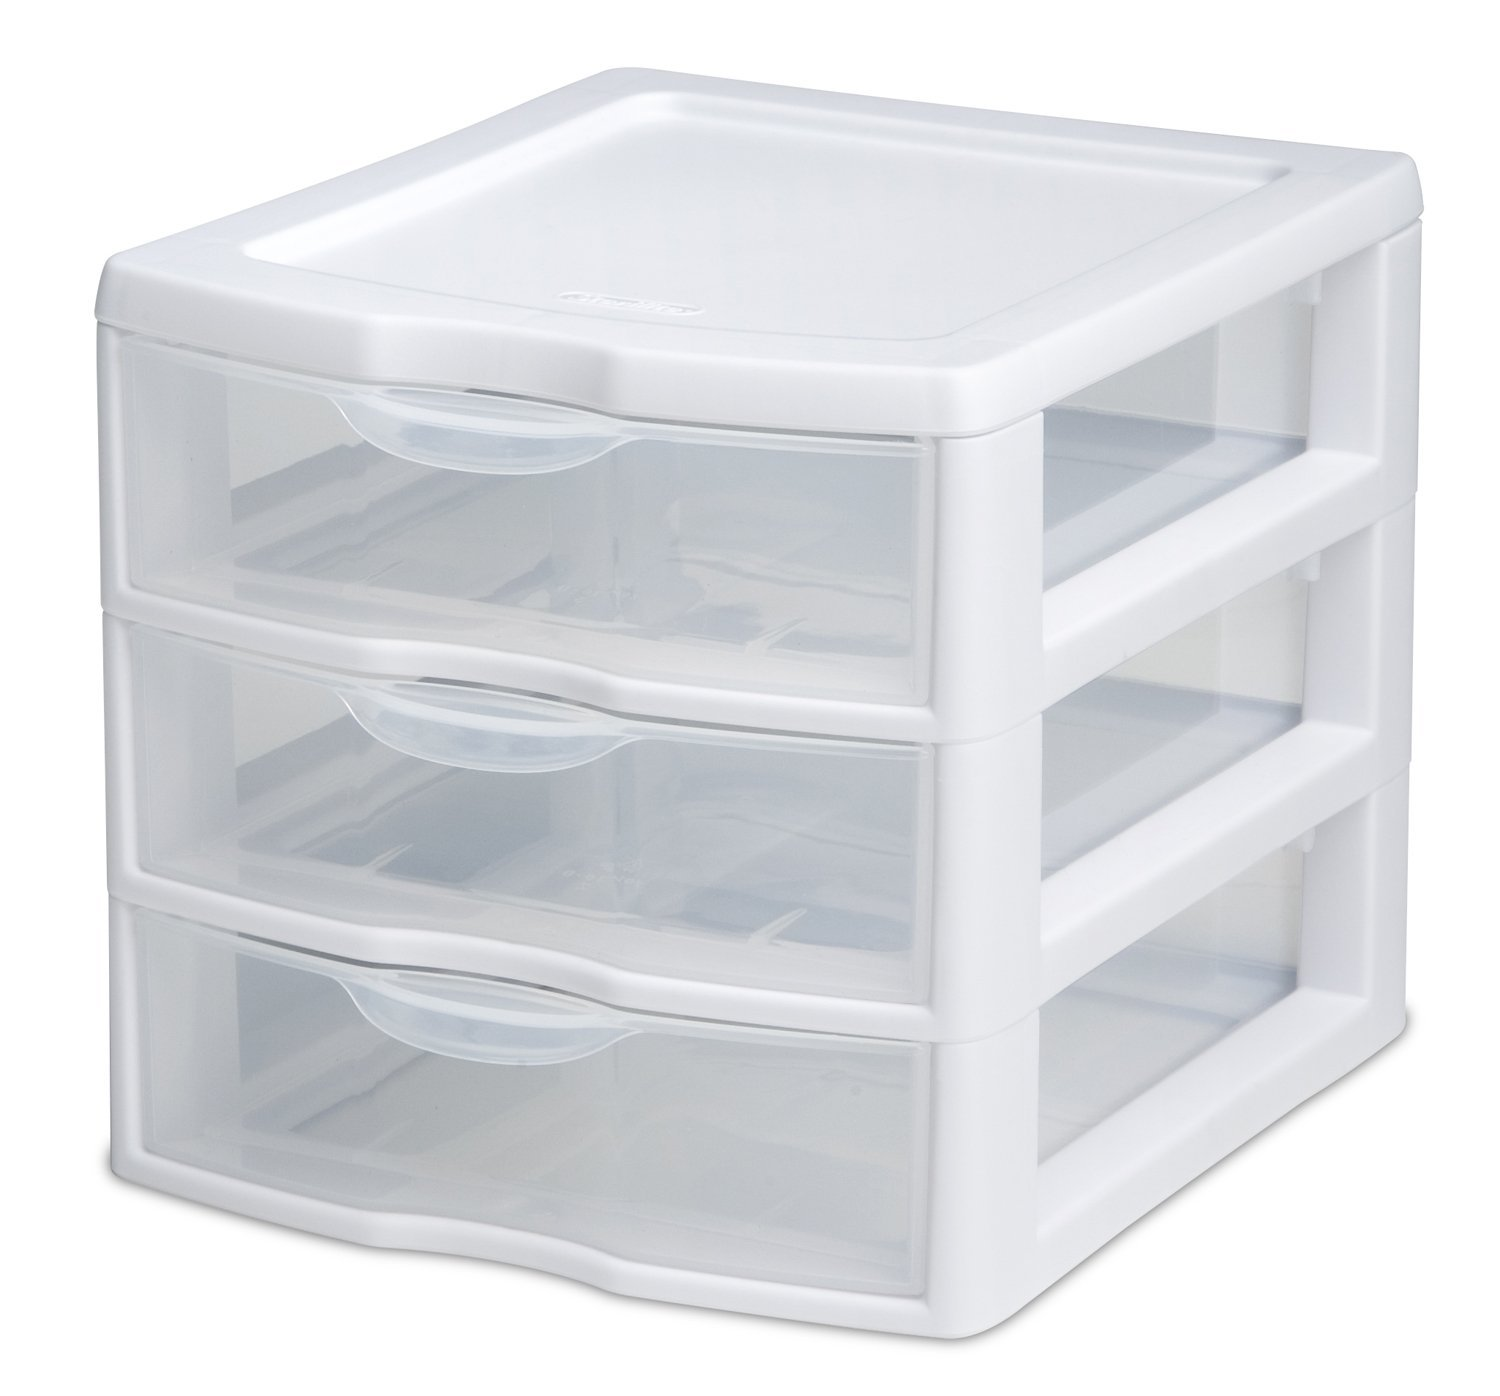 sc 1 st  Amazon.com & Amazon.com: STERILITE 3 Drawer Mini Unit 20738006 Clear: Home u0026 Kitchen